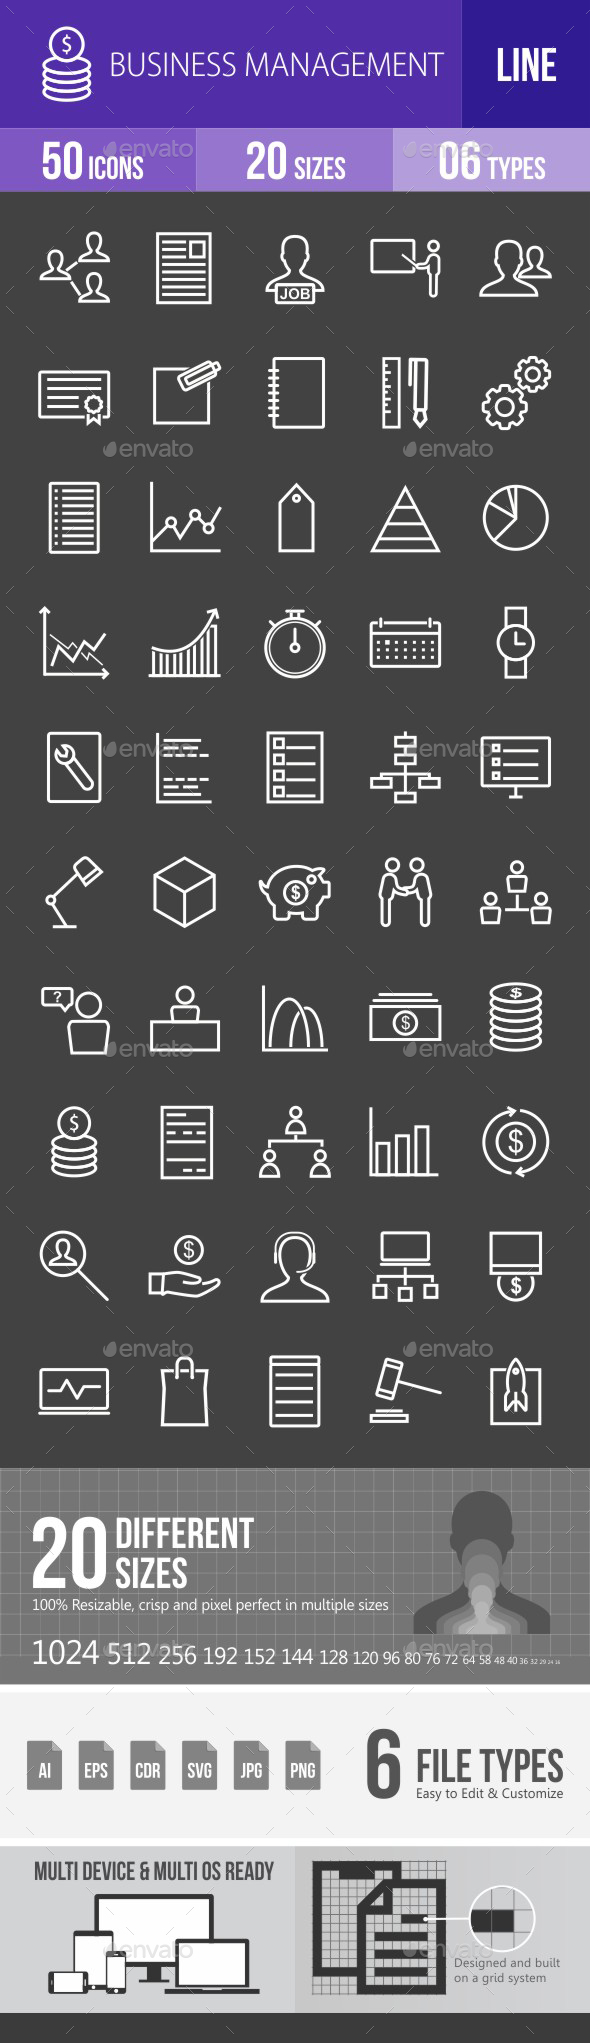 Business Management Line Inverted Icons - Icons